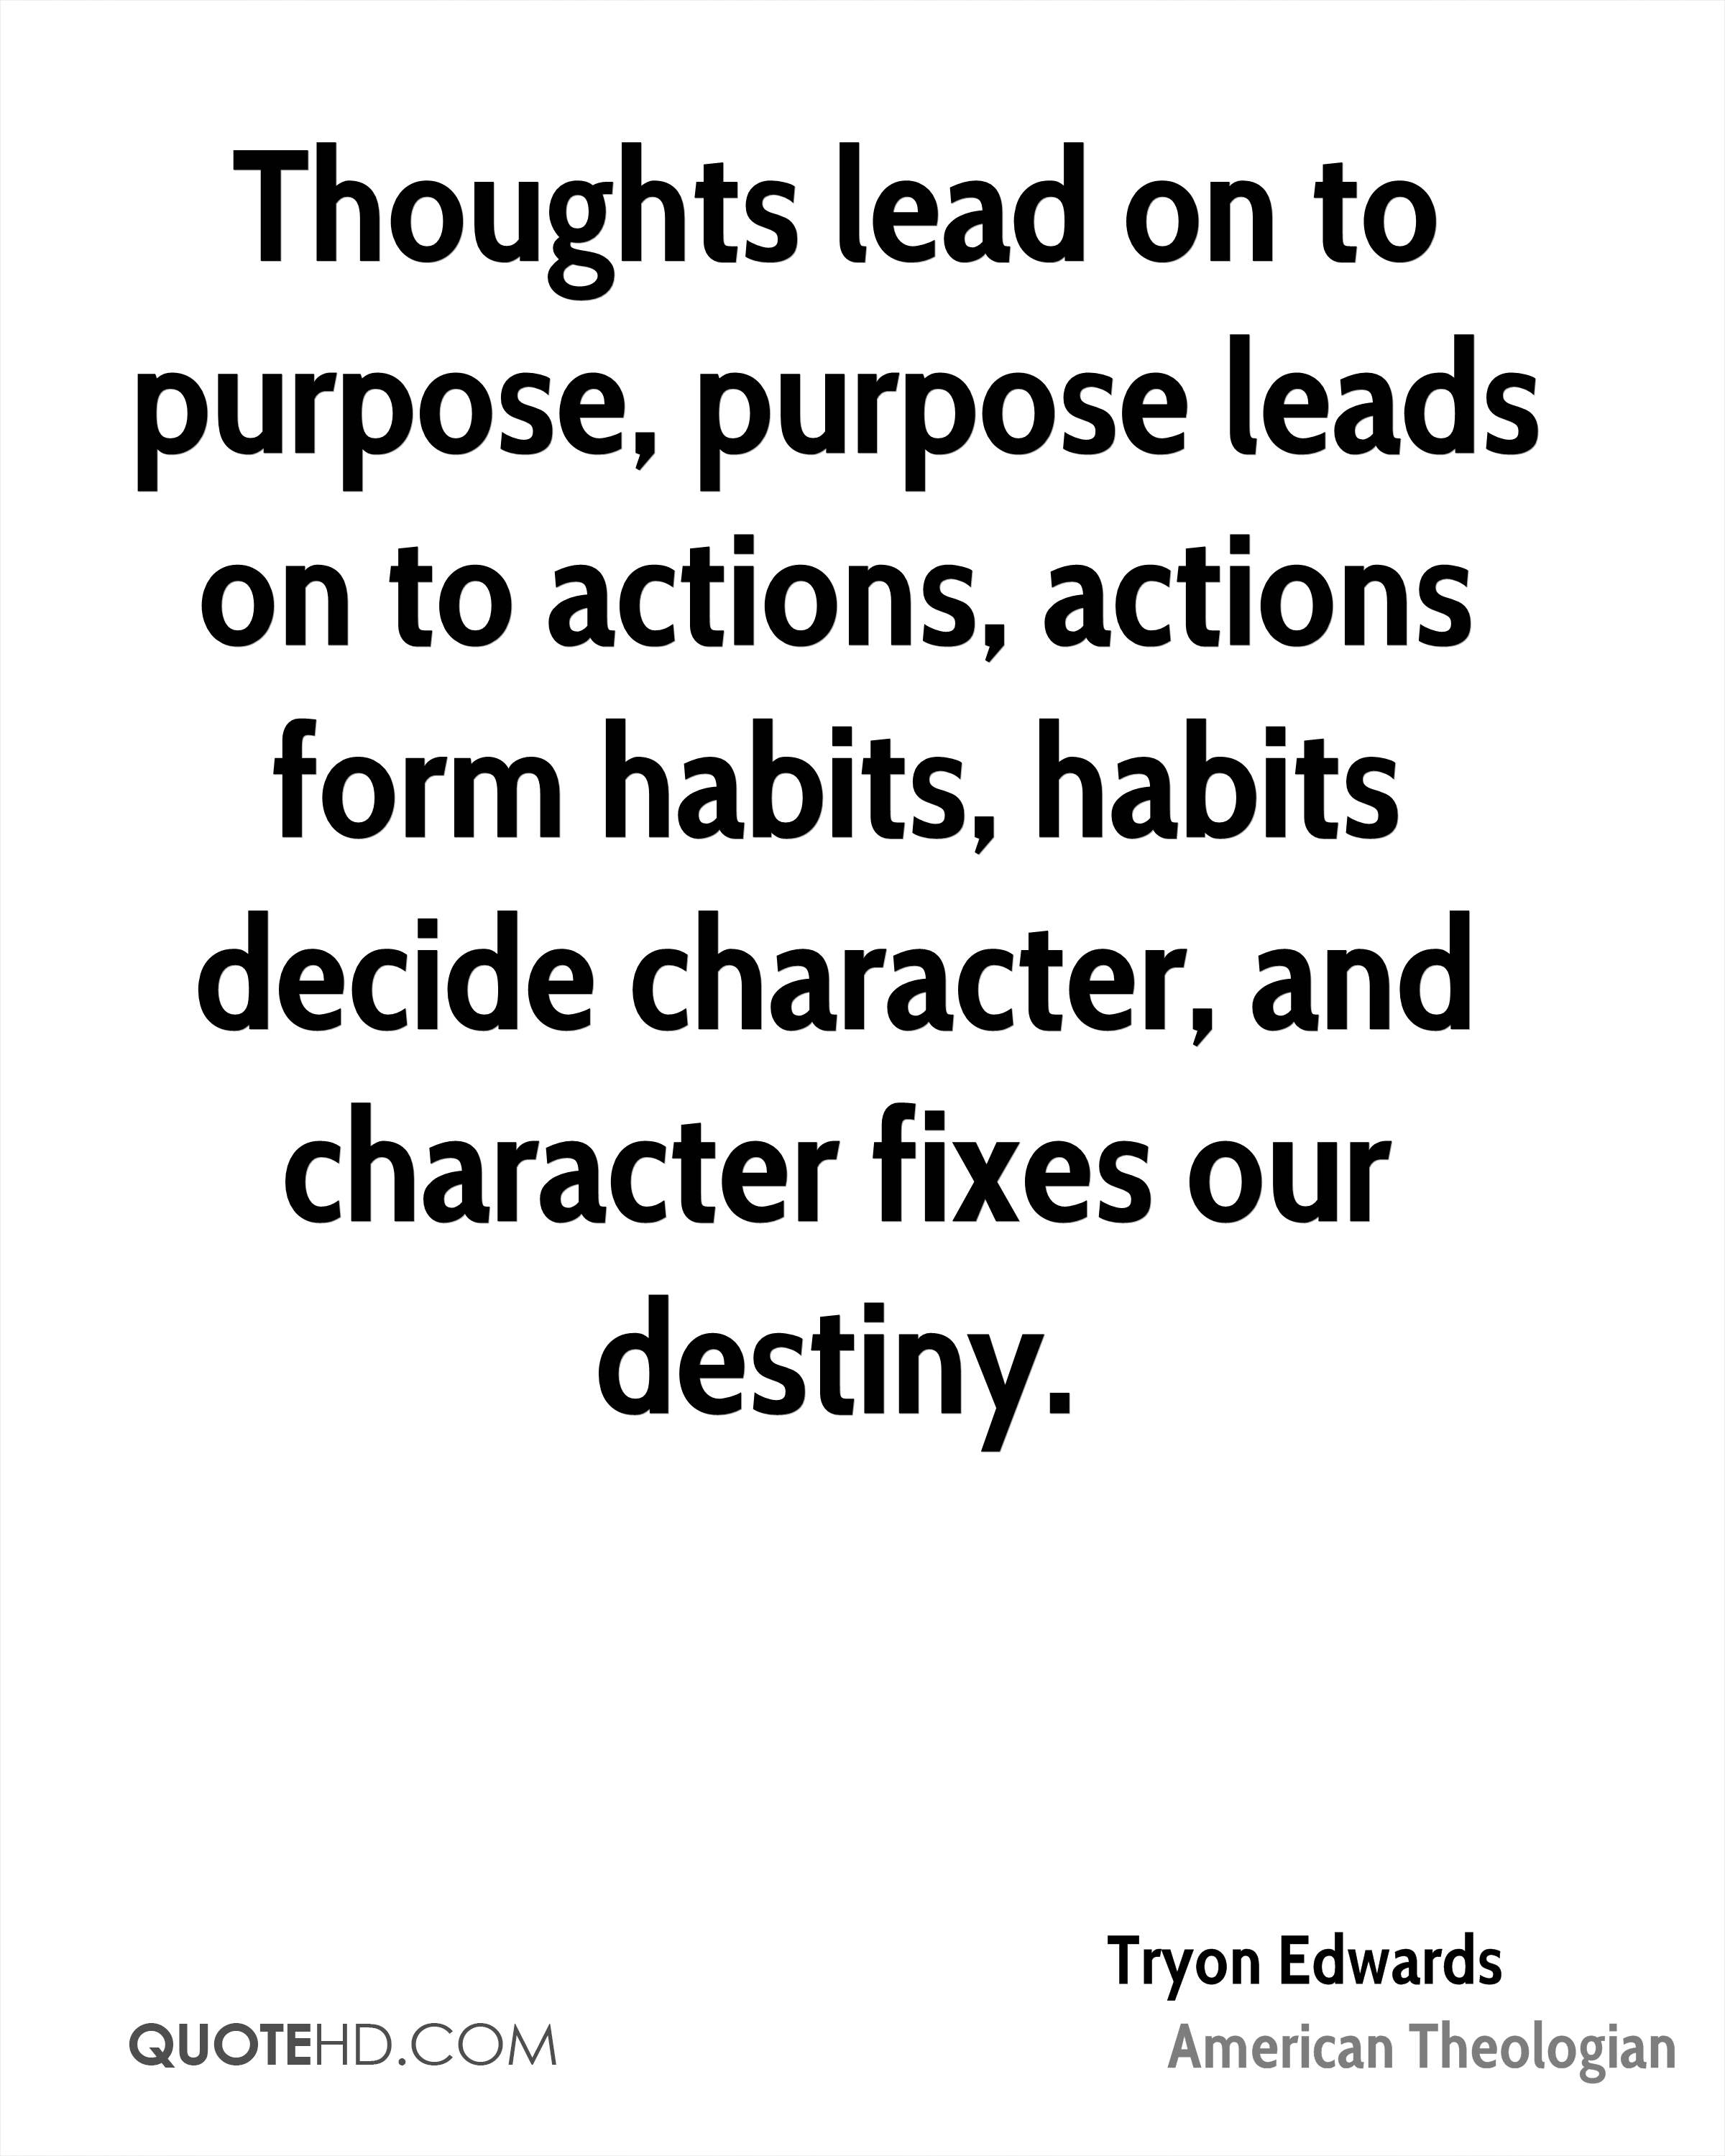 Thoughts lead on to purpose, purpose leads on to actions, actions form habits, habits decide character, and character fixes our destiny.